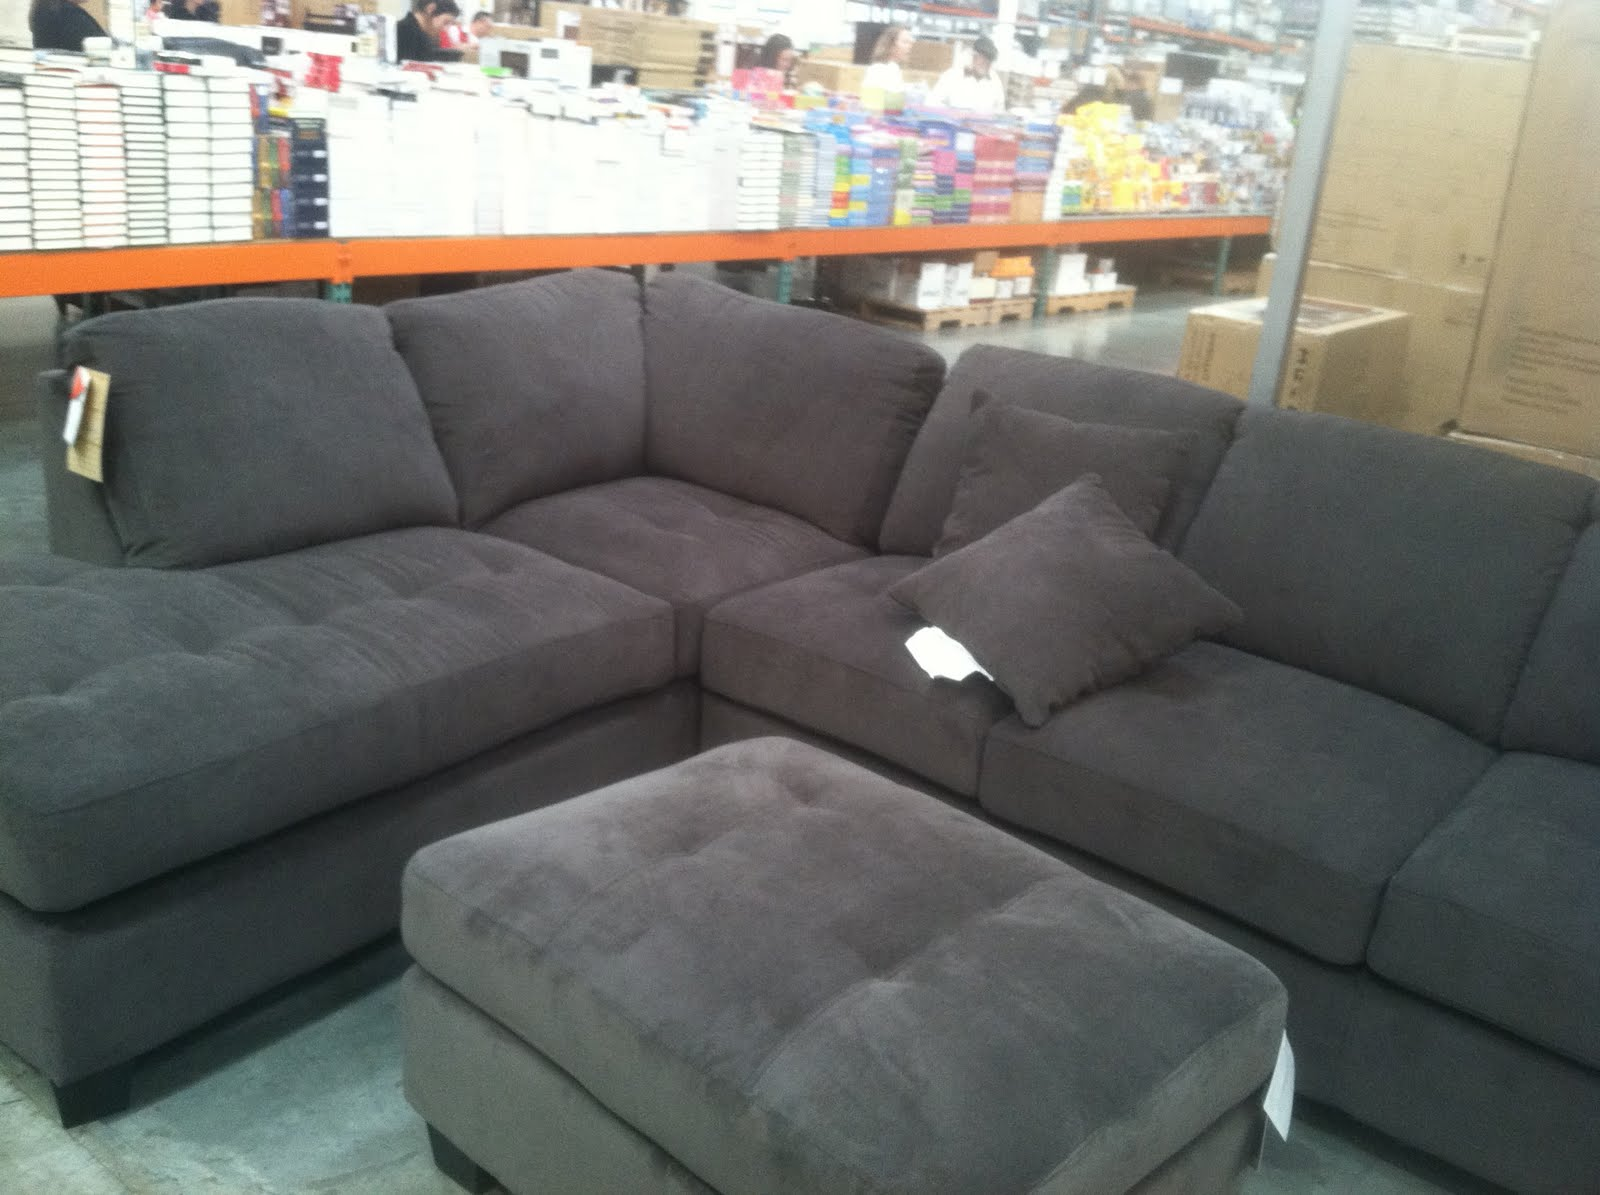 ski sleeper sofa costco sectional bed at grey couch from similar to ones we